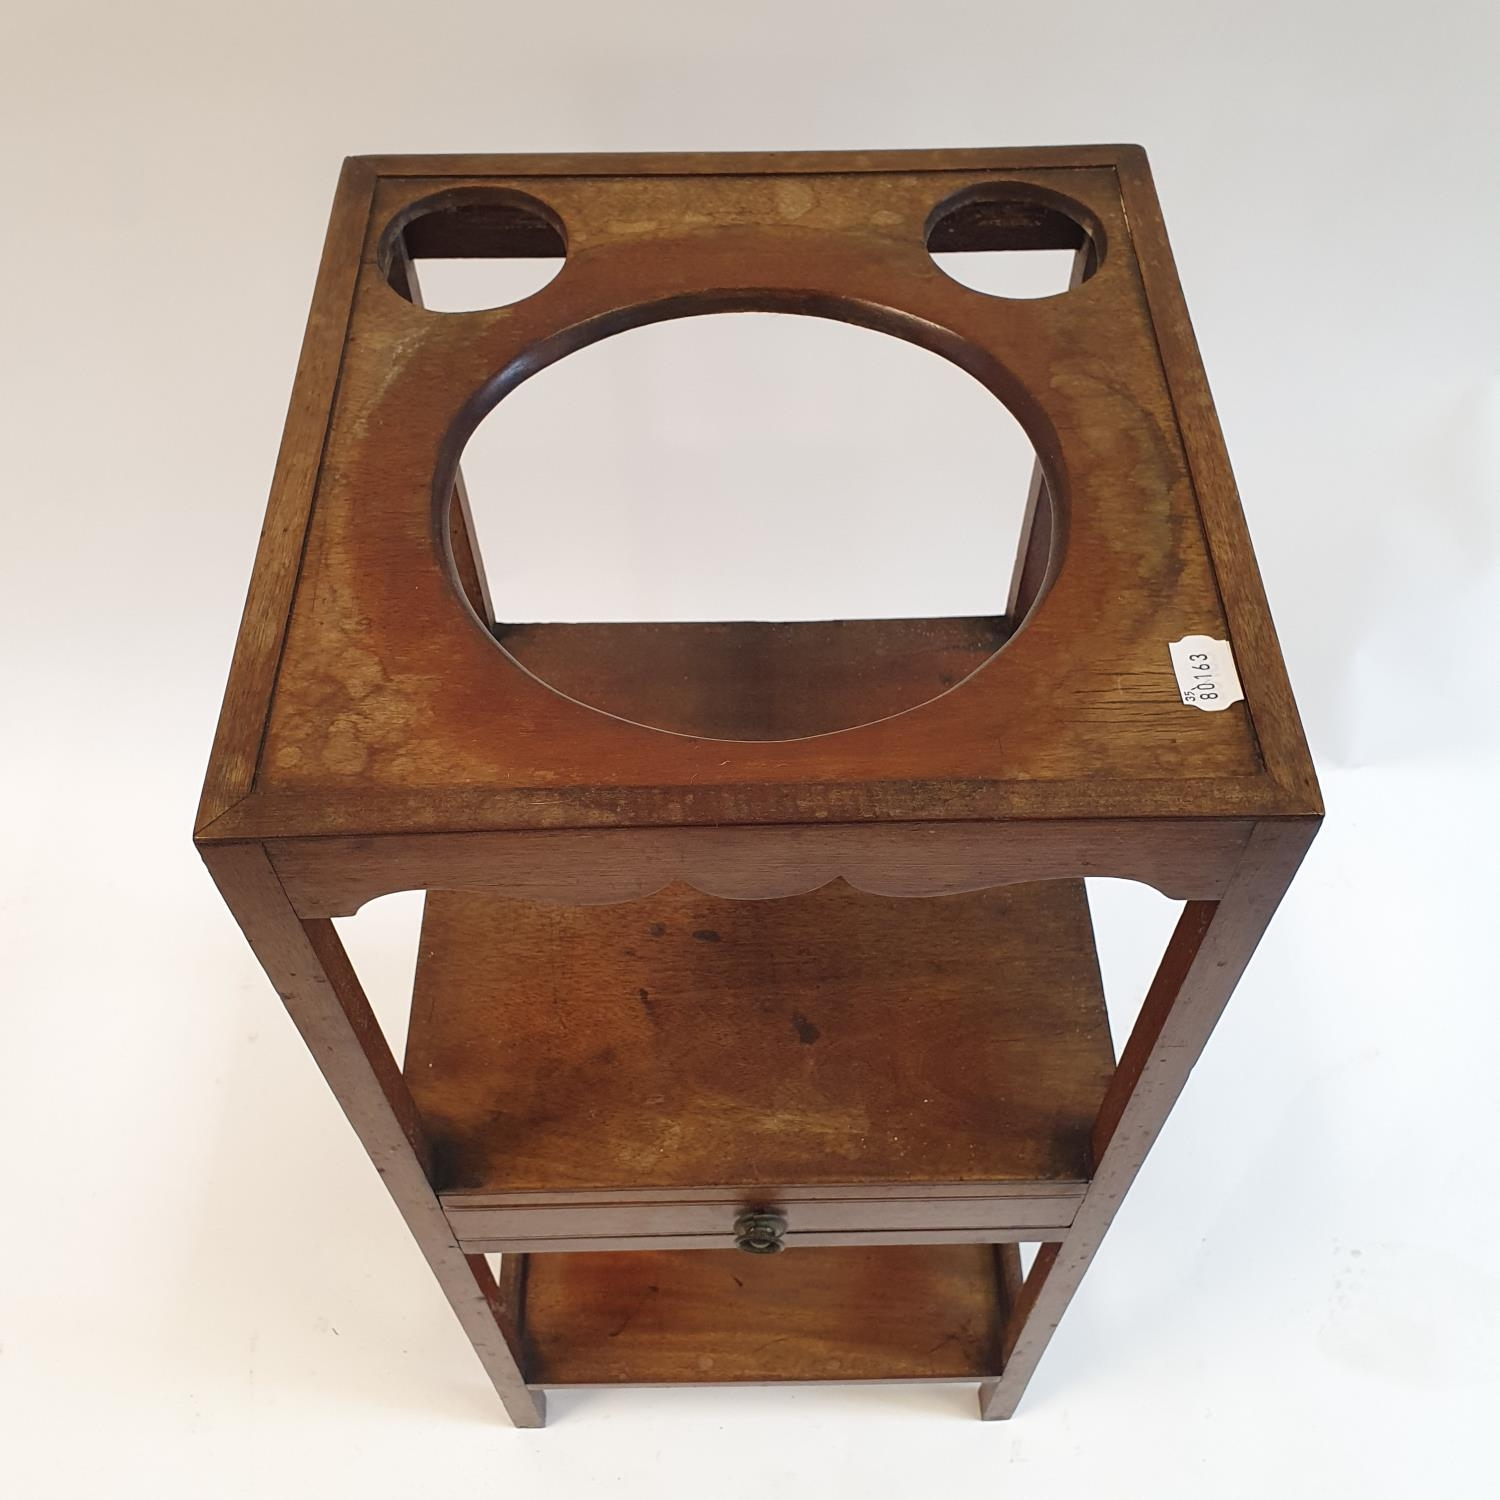 A mahogany washstand, 36 cm wide - Image 2 of 2